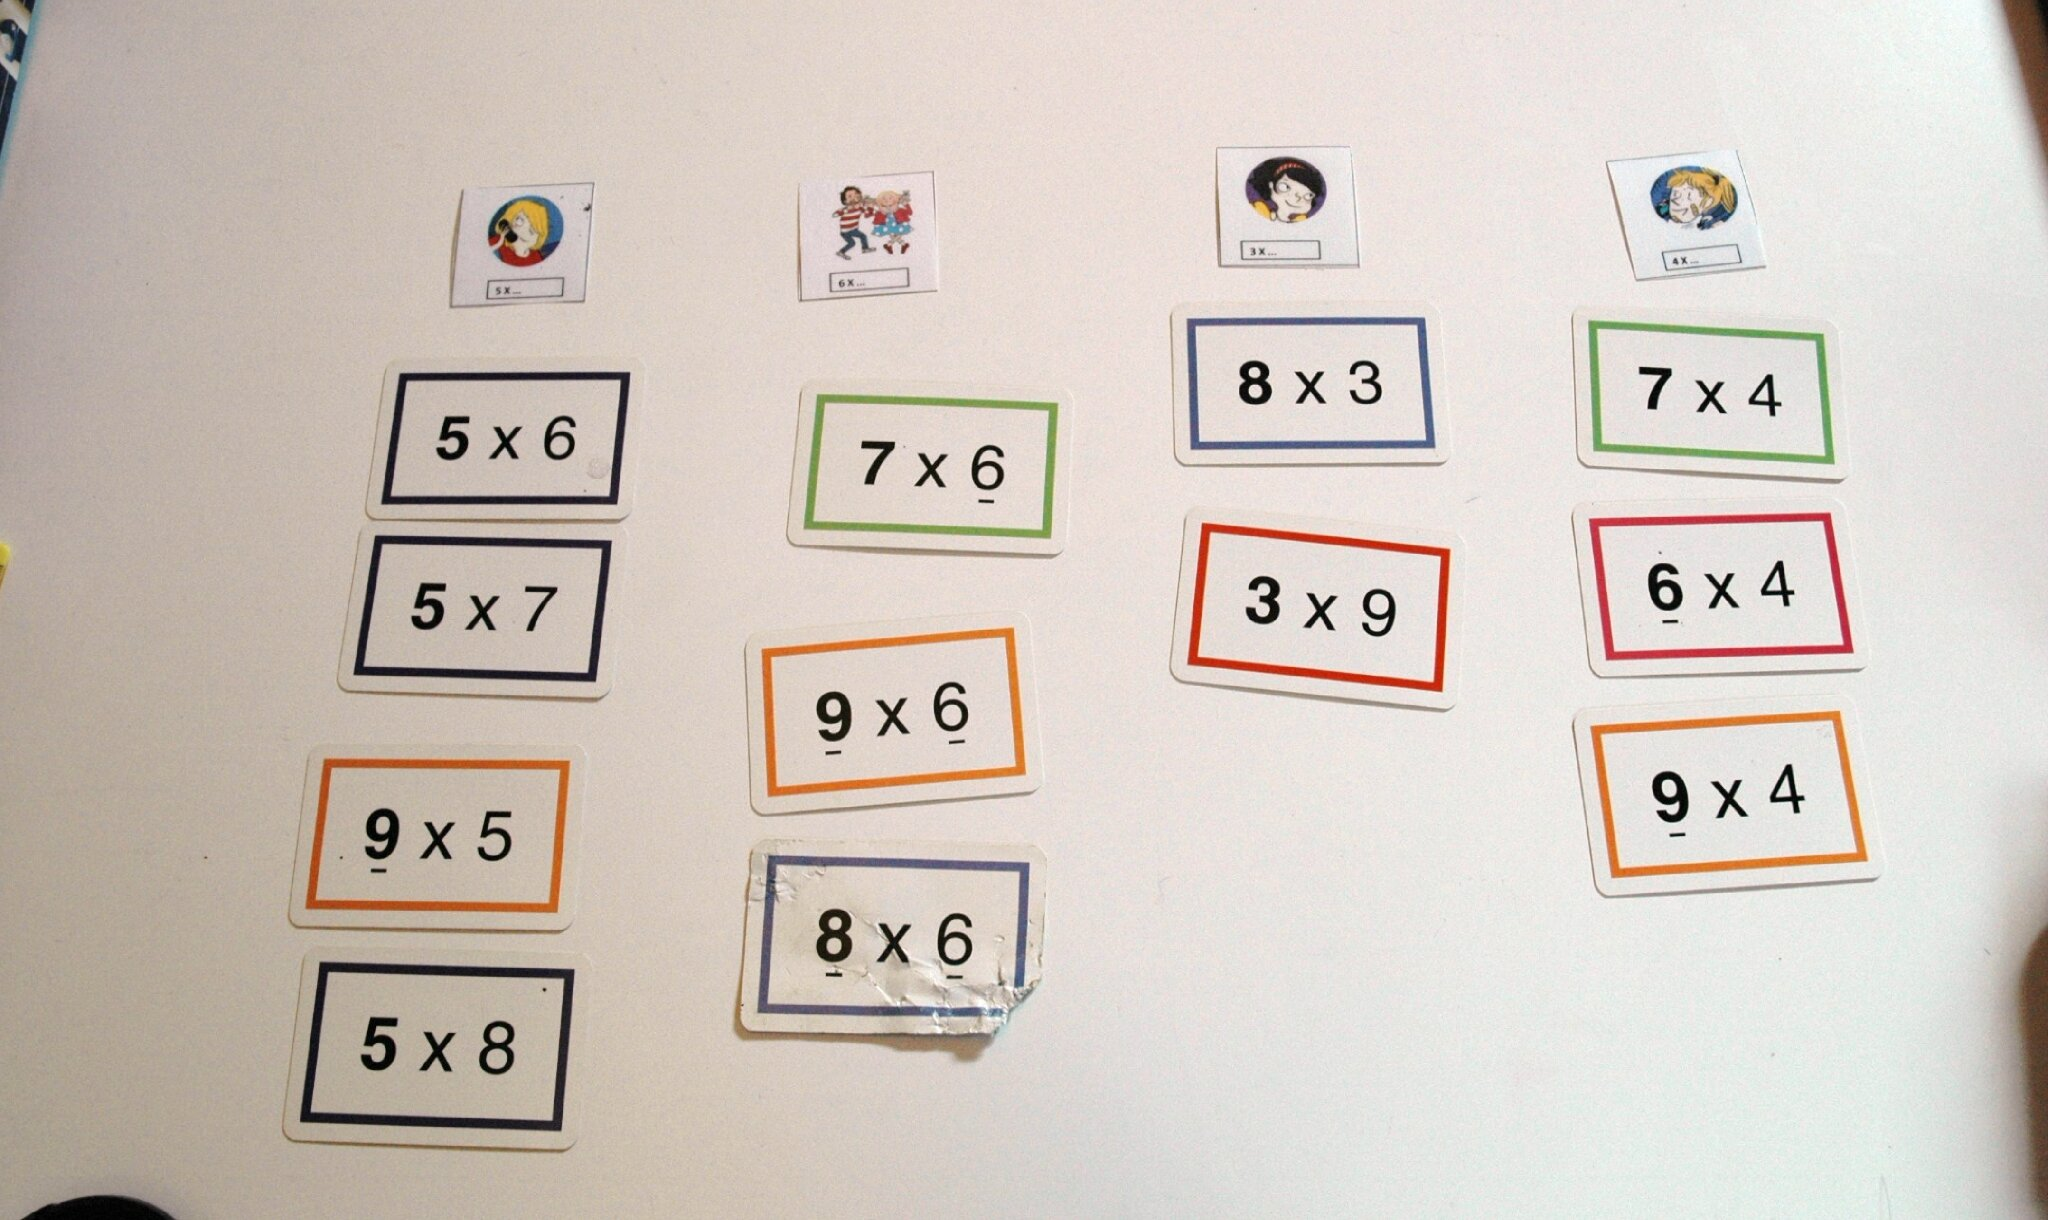 Apprendre la table de 8 tables de multiplication de le - La table de multiplication de 8 ...